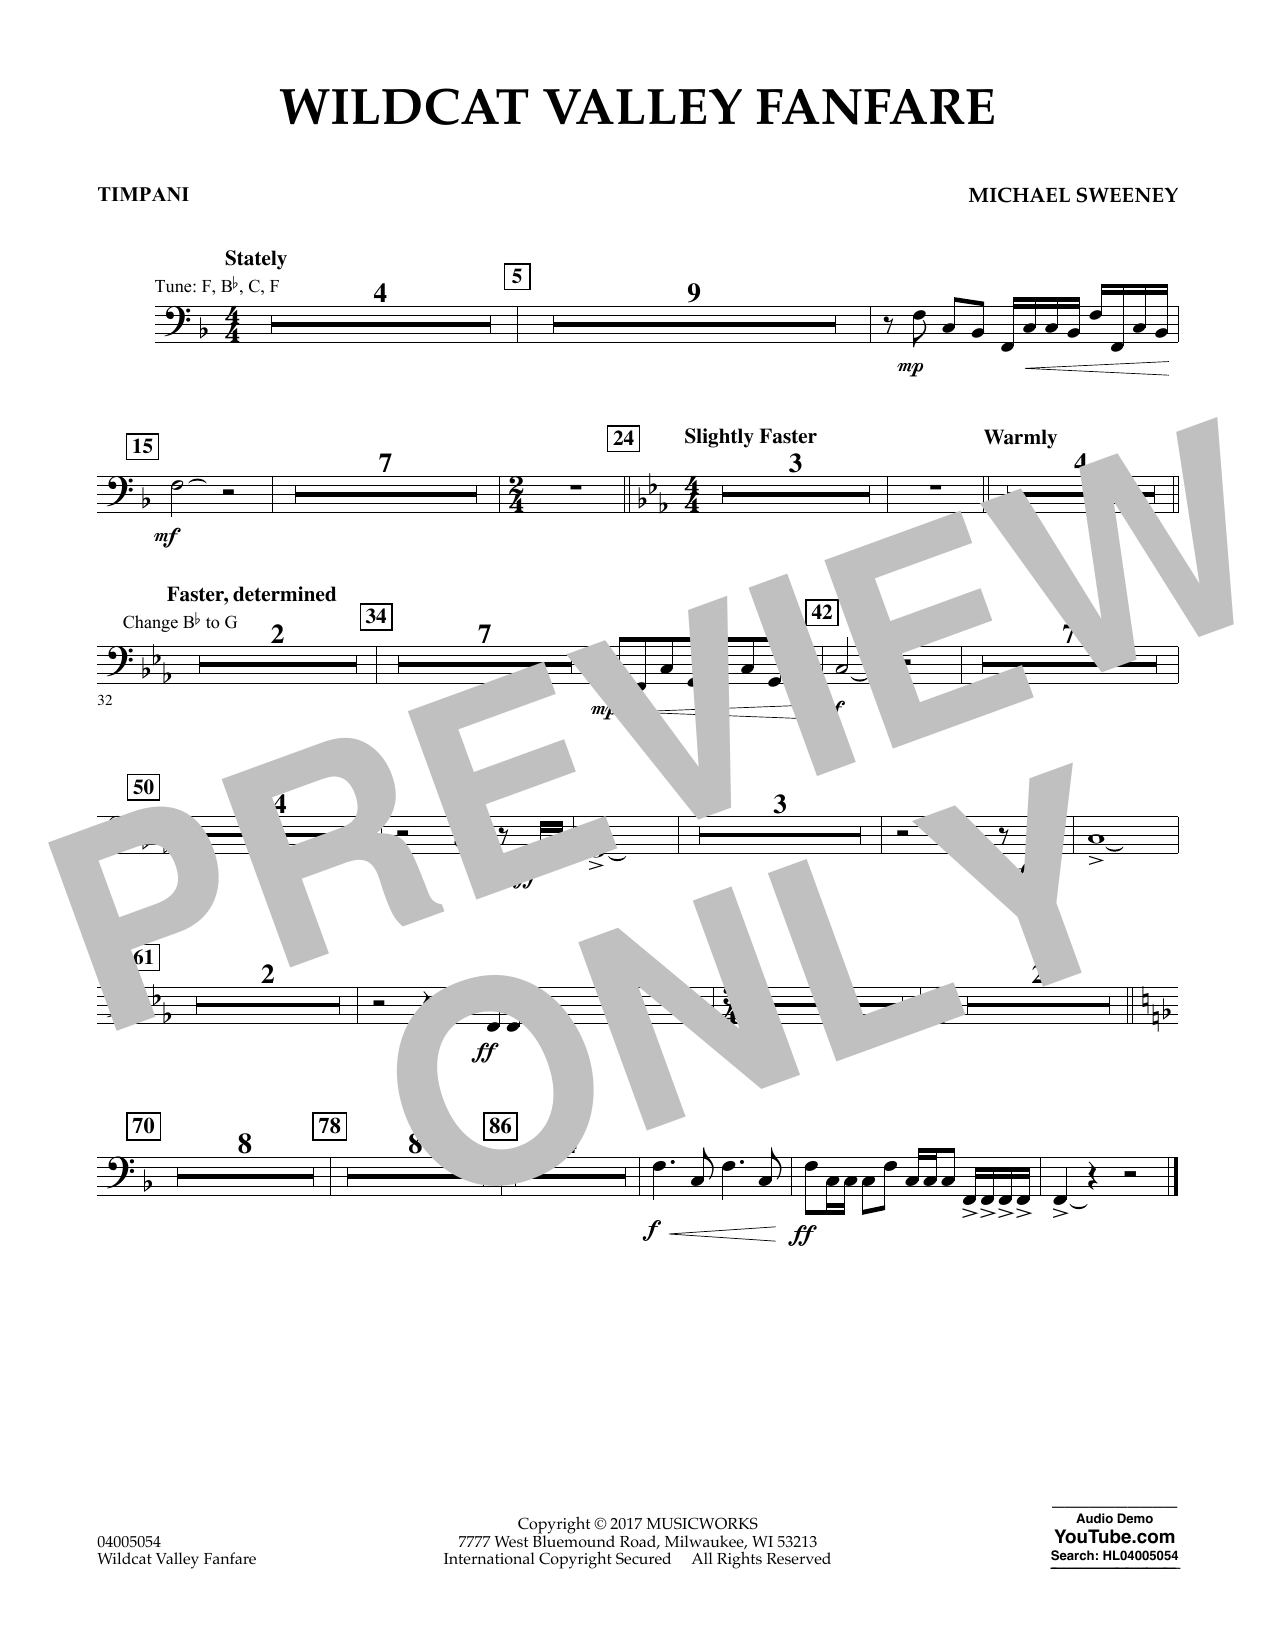 Michael Sweeney Wildcat Valley Fanfare - Timpani sheet music notes and chords. Download Printable PDF.